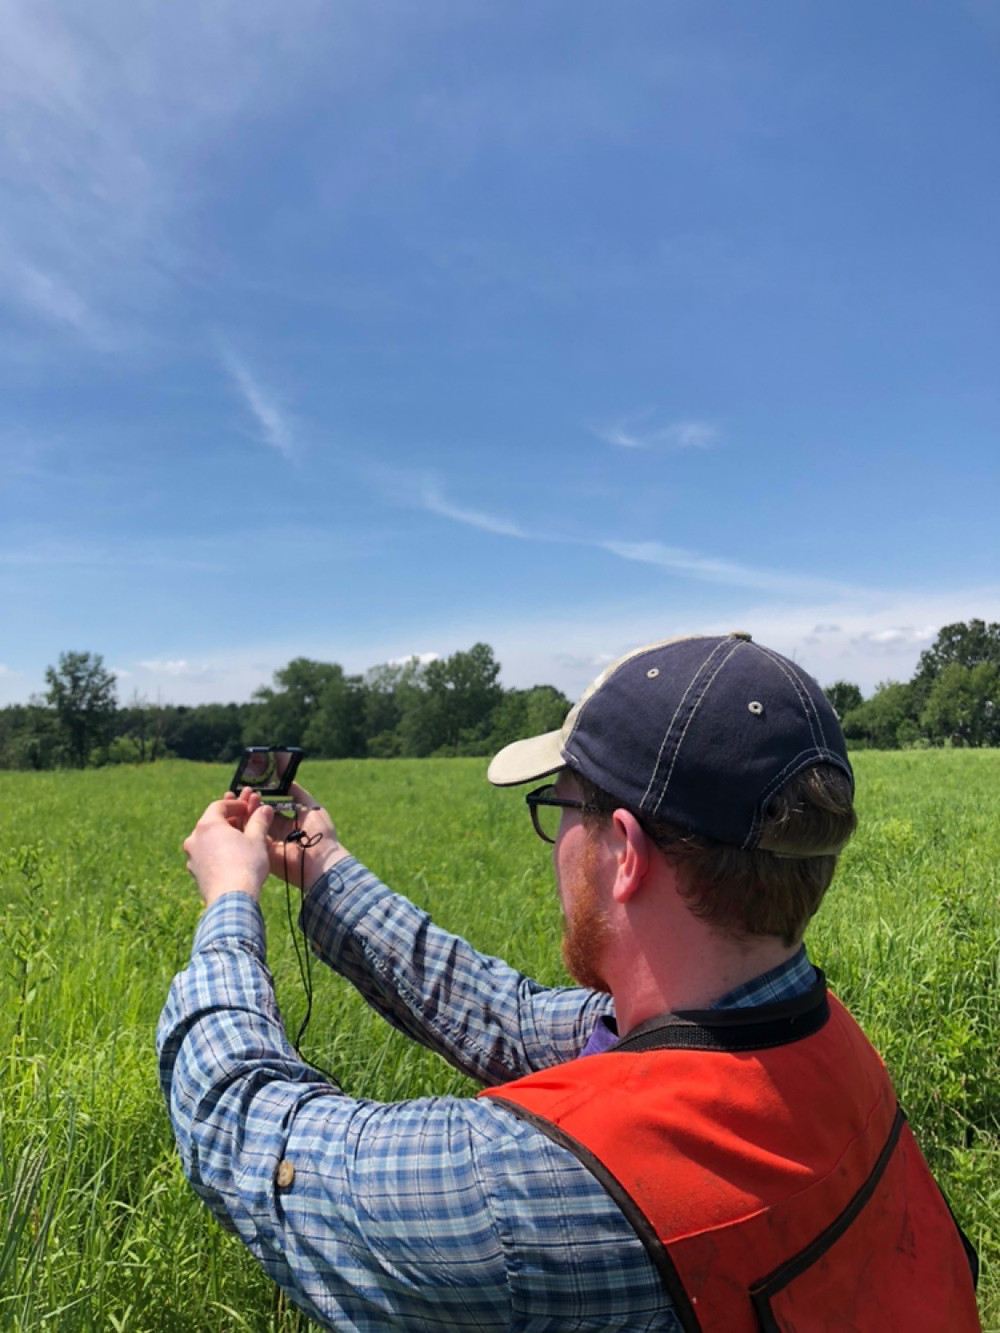 Garret using a compass in the prarie